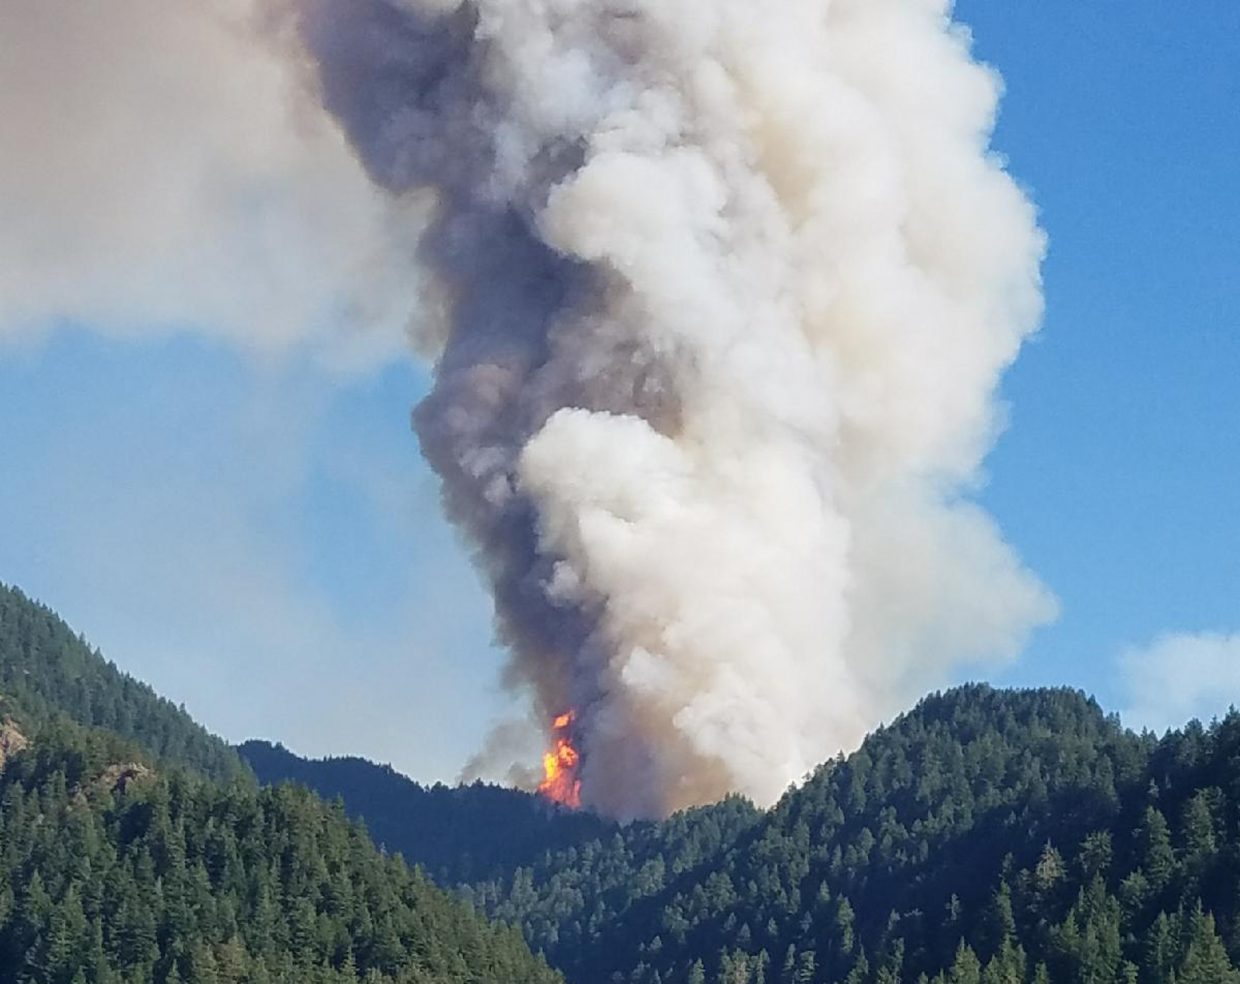 In this Saturday, Sept. 2, 2017, photo provided by Inciweb, the Eagle Creek wildfire burns in the Columbia River Gorge east of Portland, Ore. A lengthy stretch of highway Interstate 84 remains closed Tuesday, Sept. 5, 2017, as crews battle the growing Eagle Creek wildfire that has also caused evacuations and sparked blazes across the Columbia River in Washington state. (Inciweb via AP)